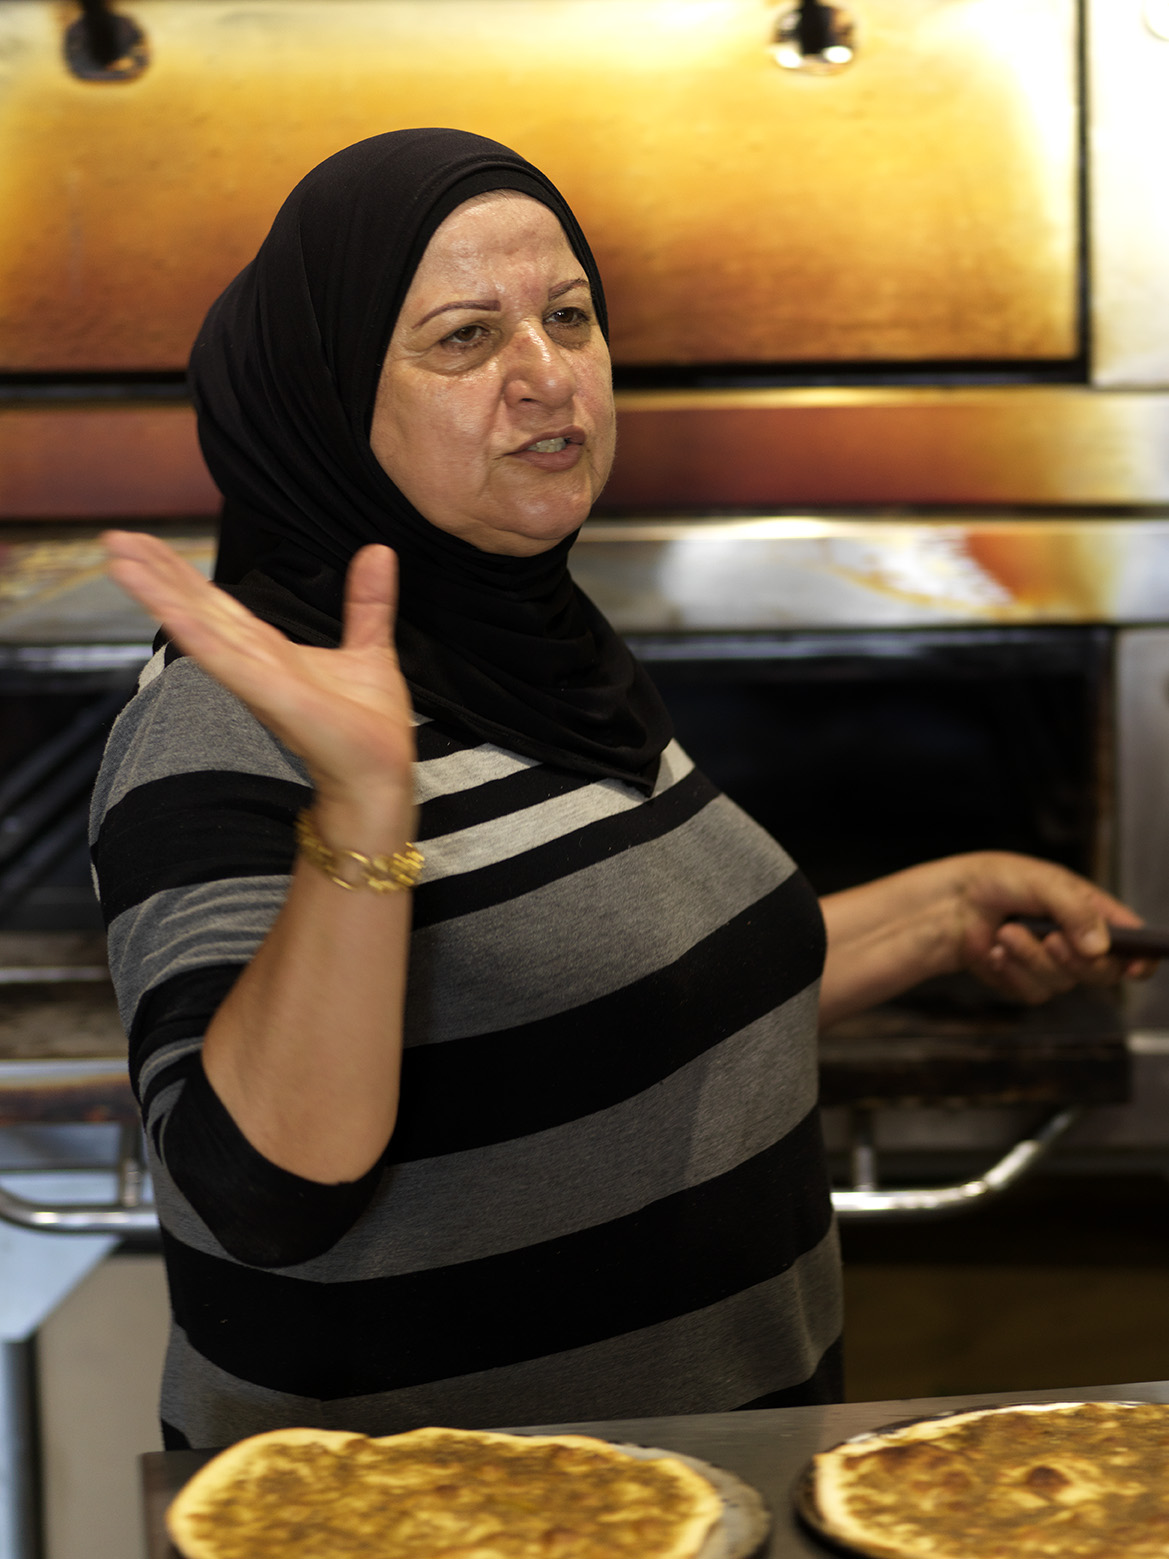 The manoush master - clocking up 30+ years making some of the city's best manoushe.